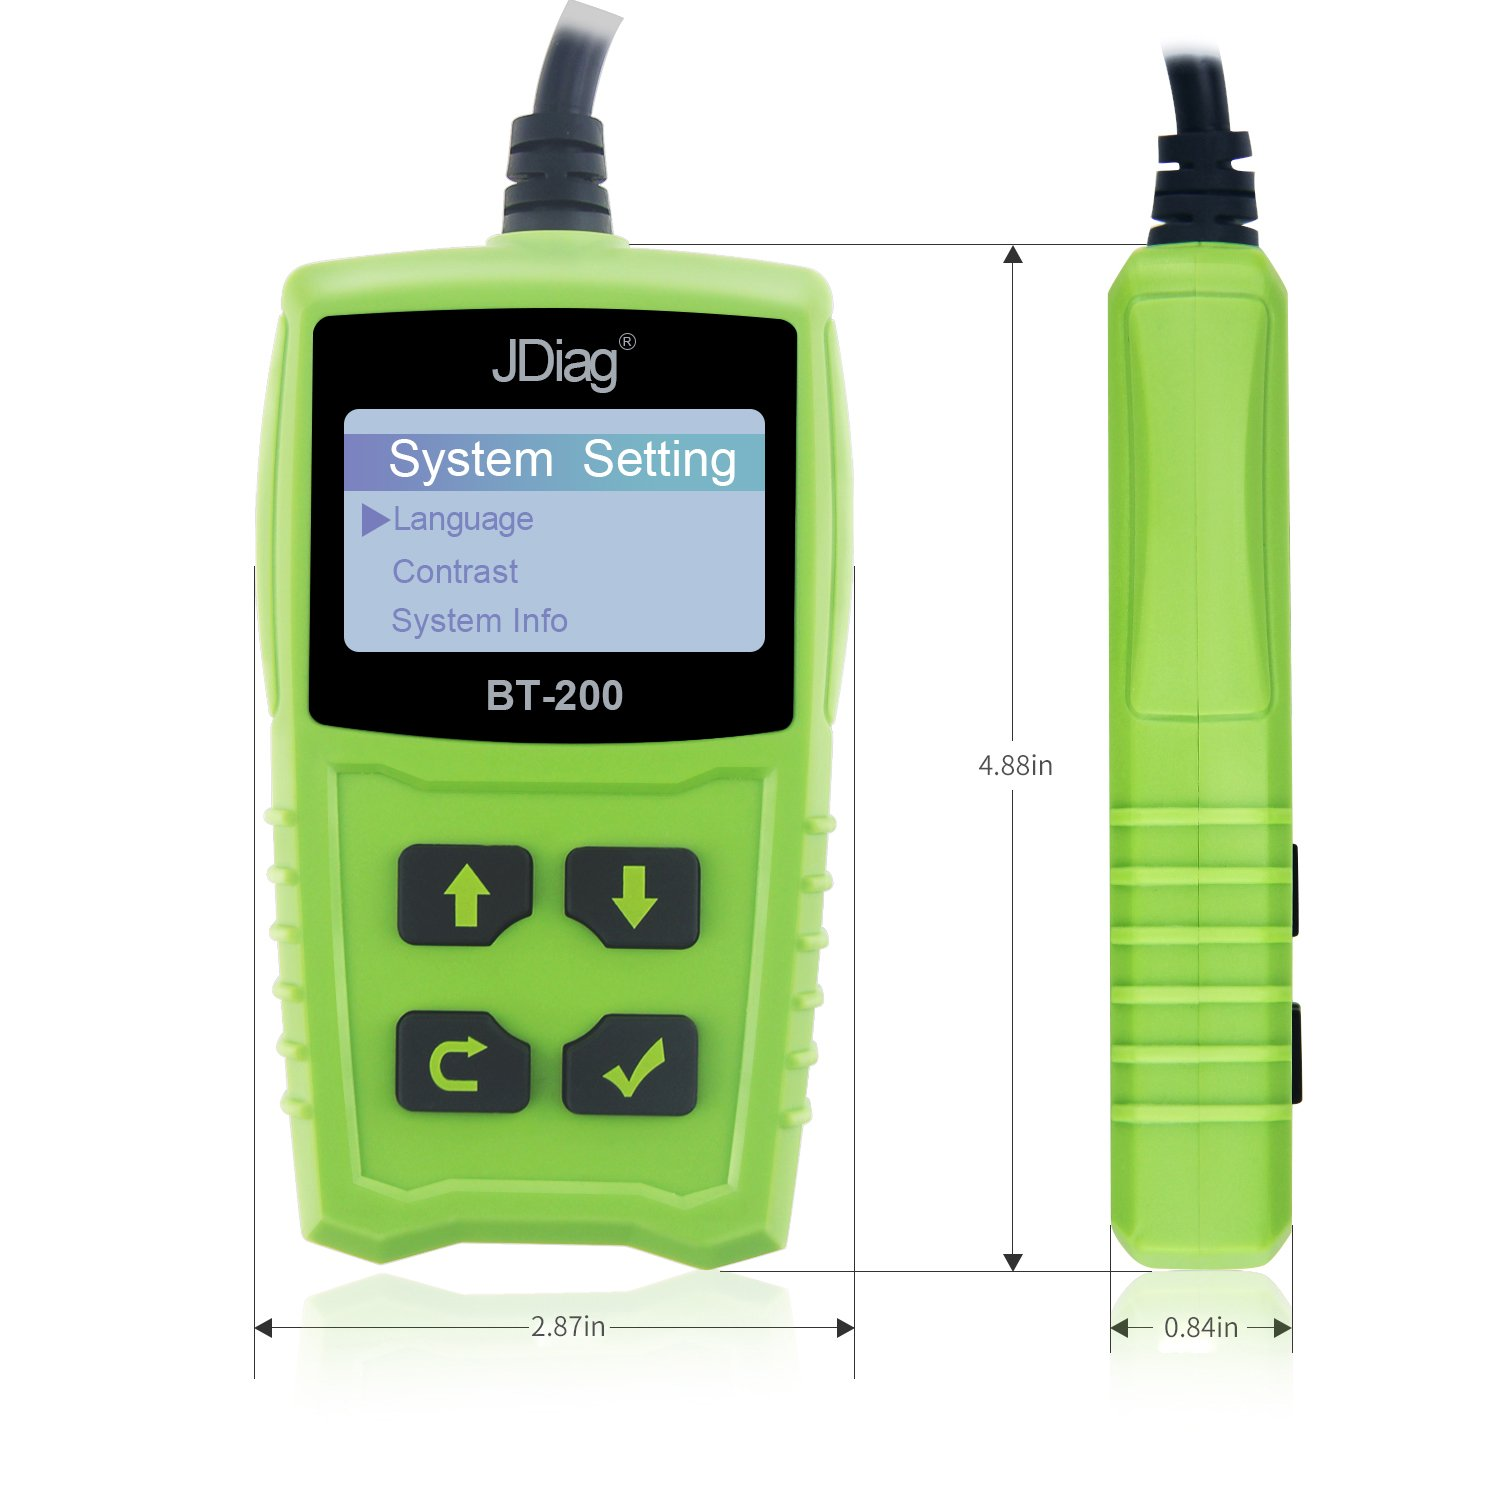 Car Battery Tester 12V 100-1700 CCA 100AH BT200 Automotive Load Battery Tester Digital Analyzer Bad Cell Test Tool VXDAS for Car/Boat/Motorcycle and More (Green) by VXDAS (Image #4)